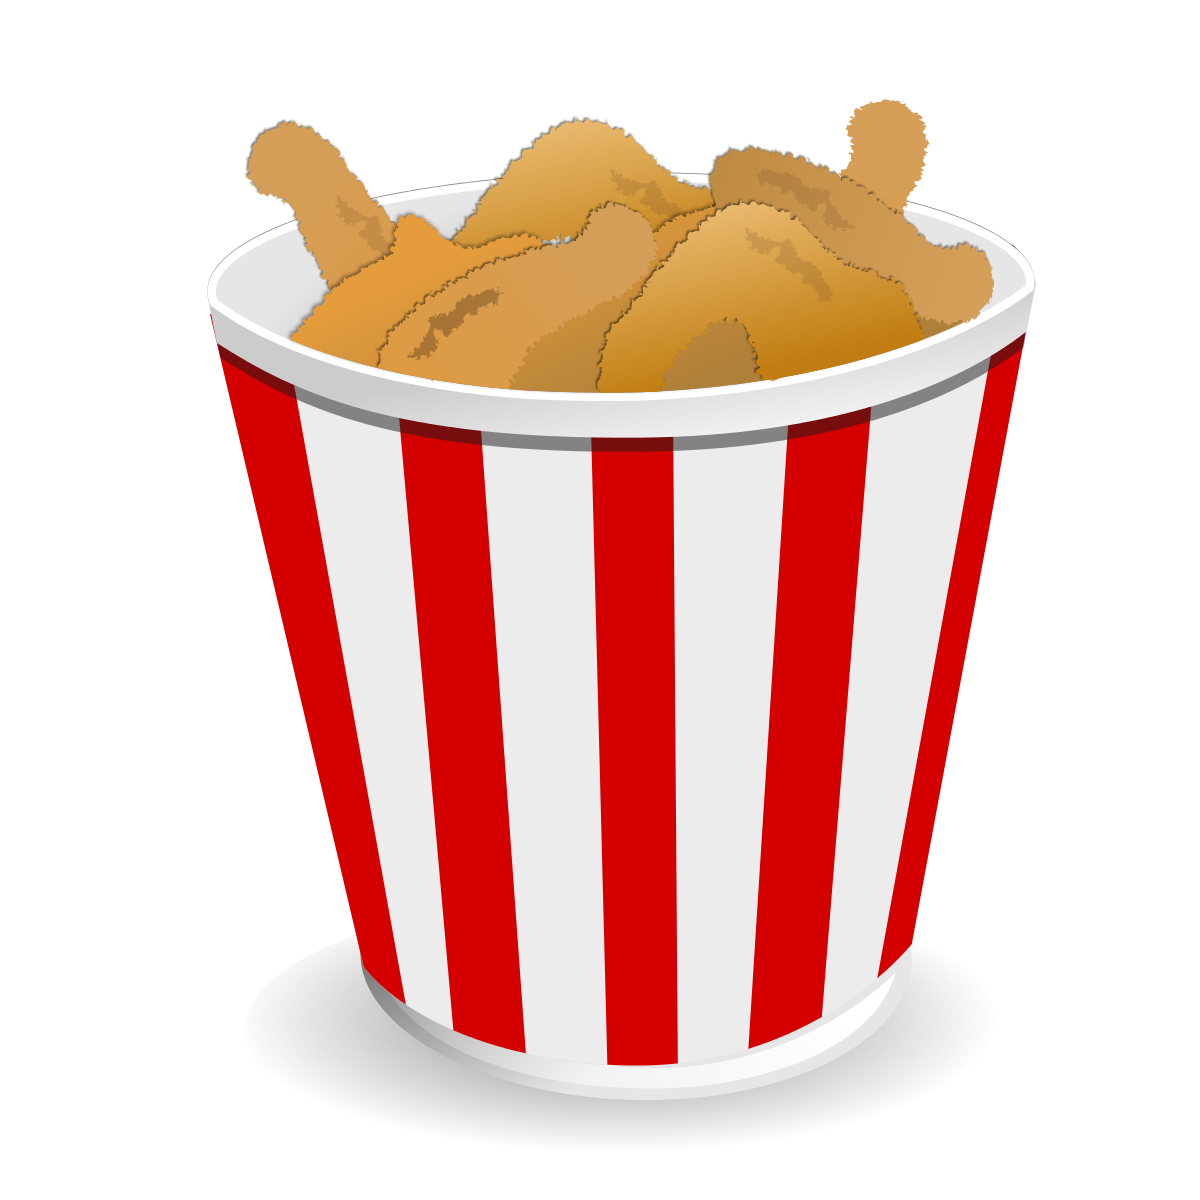 bucket of chicken clipart 20 free Cliparts | Download ...